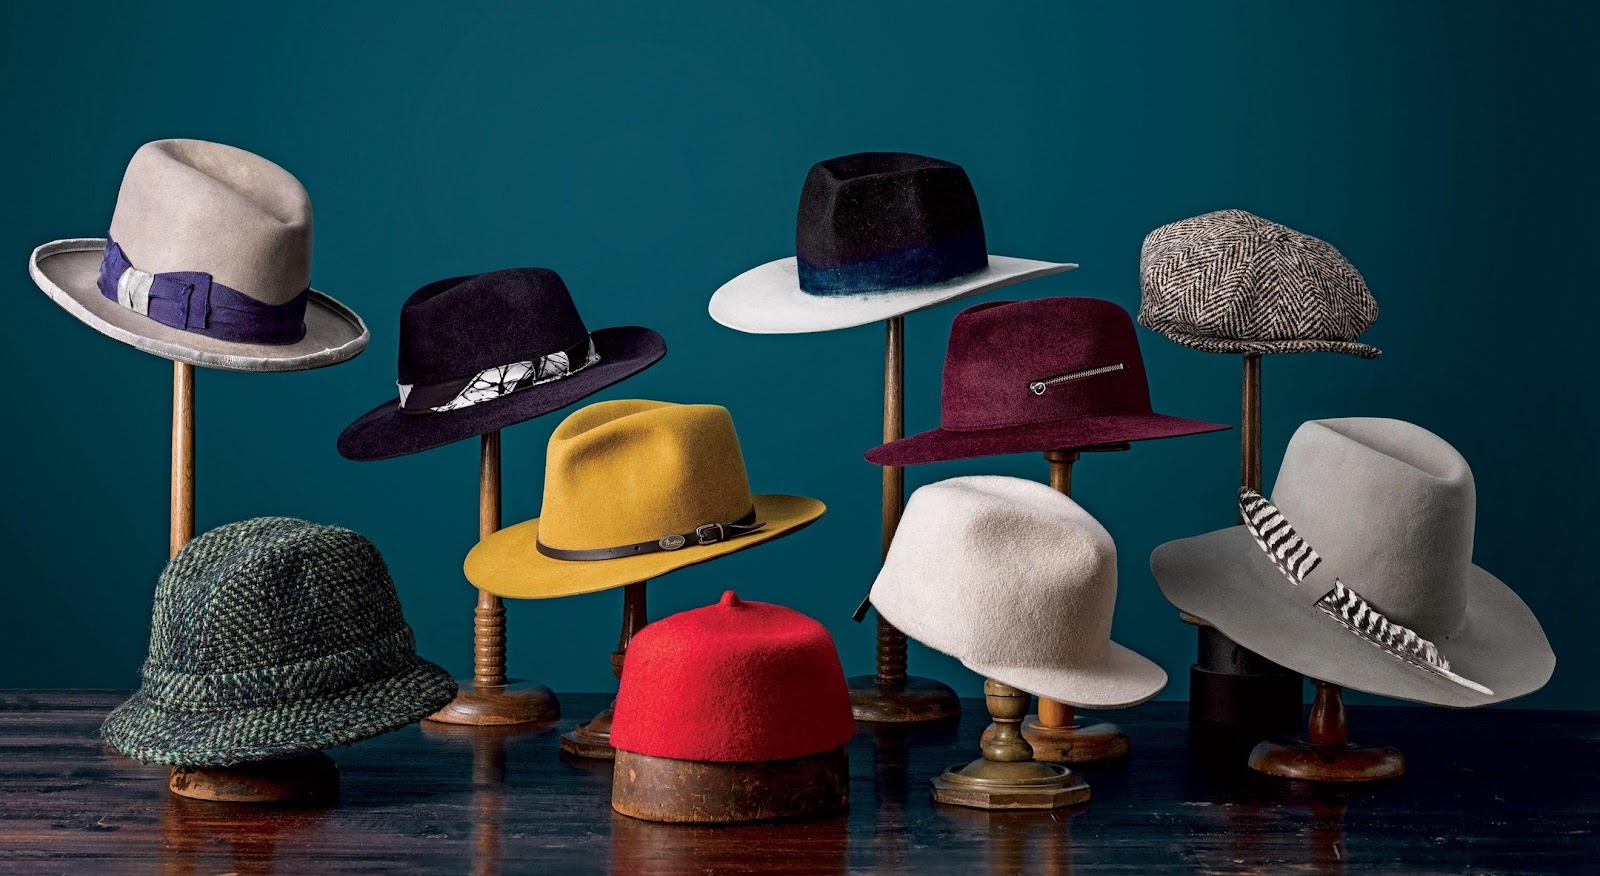 A group of hats on a table  Description automatically generated with low confidence